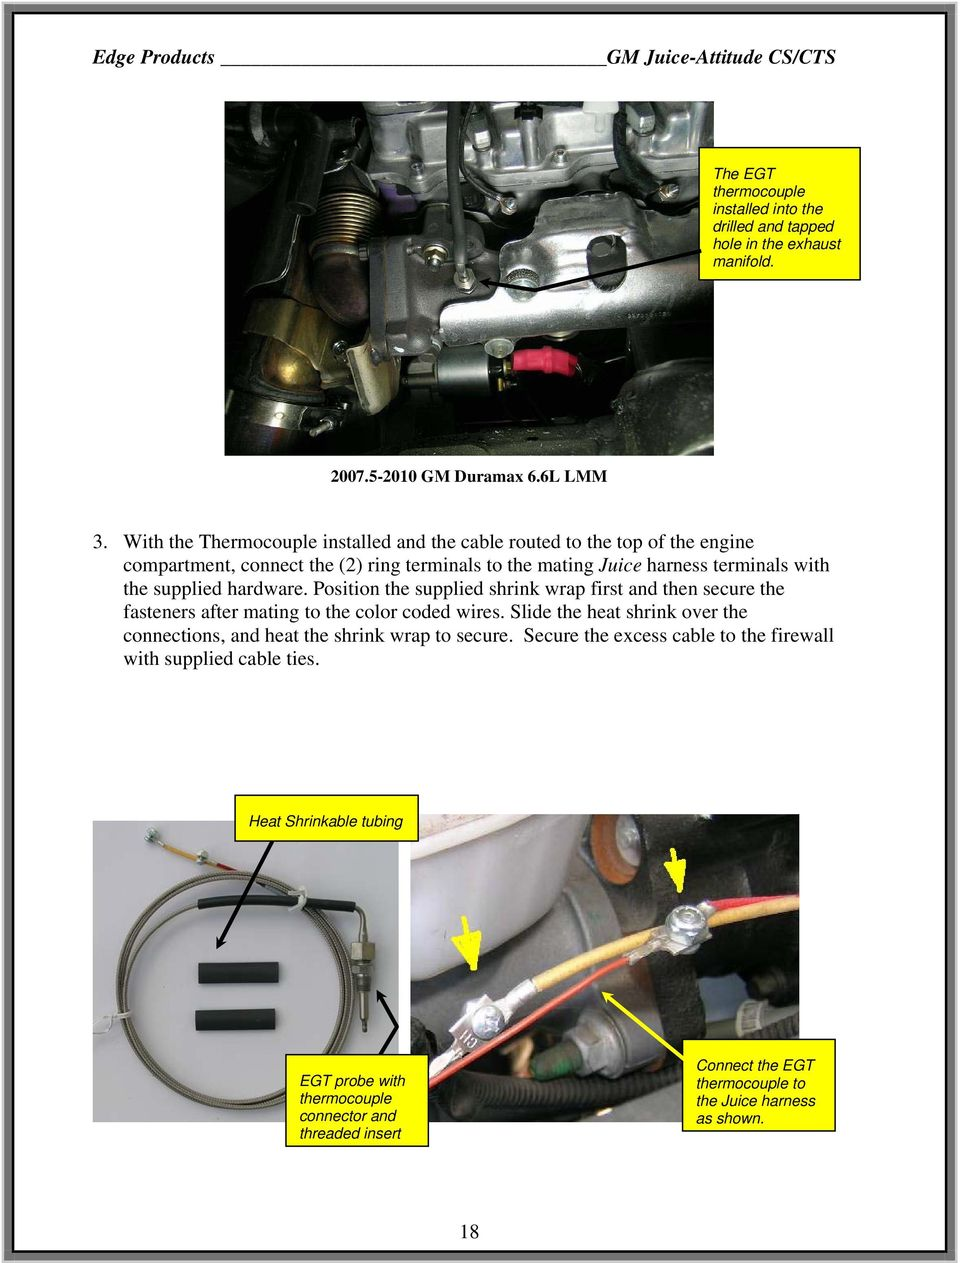 Edge Gm Juice Supplement Installation Instructions Read Important Wire Harness Connector With Hardware Position The Supplied Shrink Wrap First And Then Secure Fasteners After Mating To